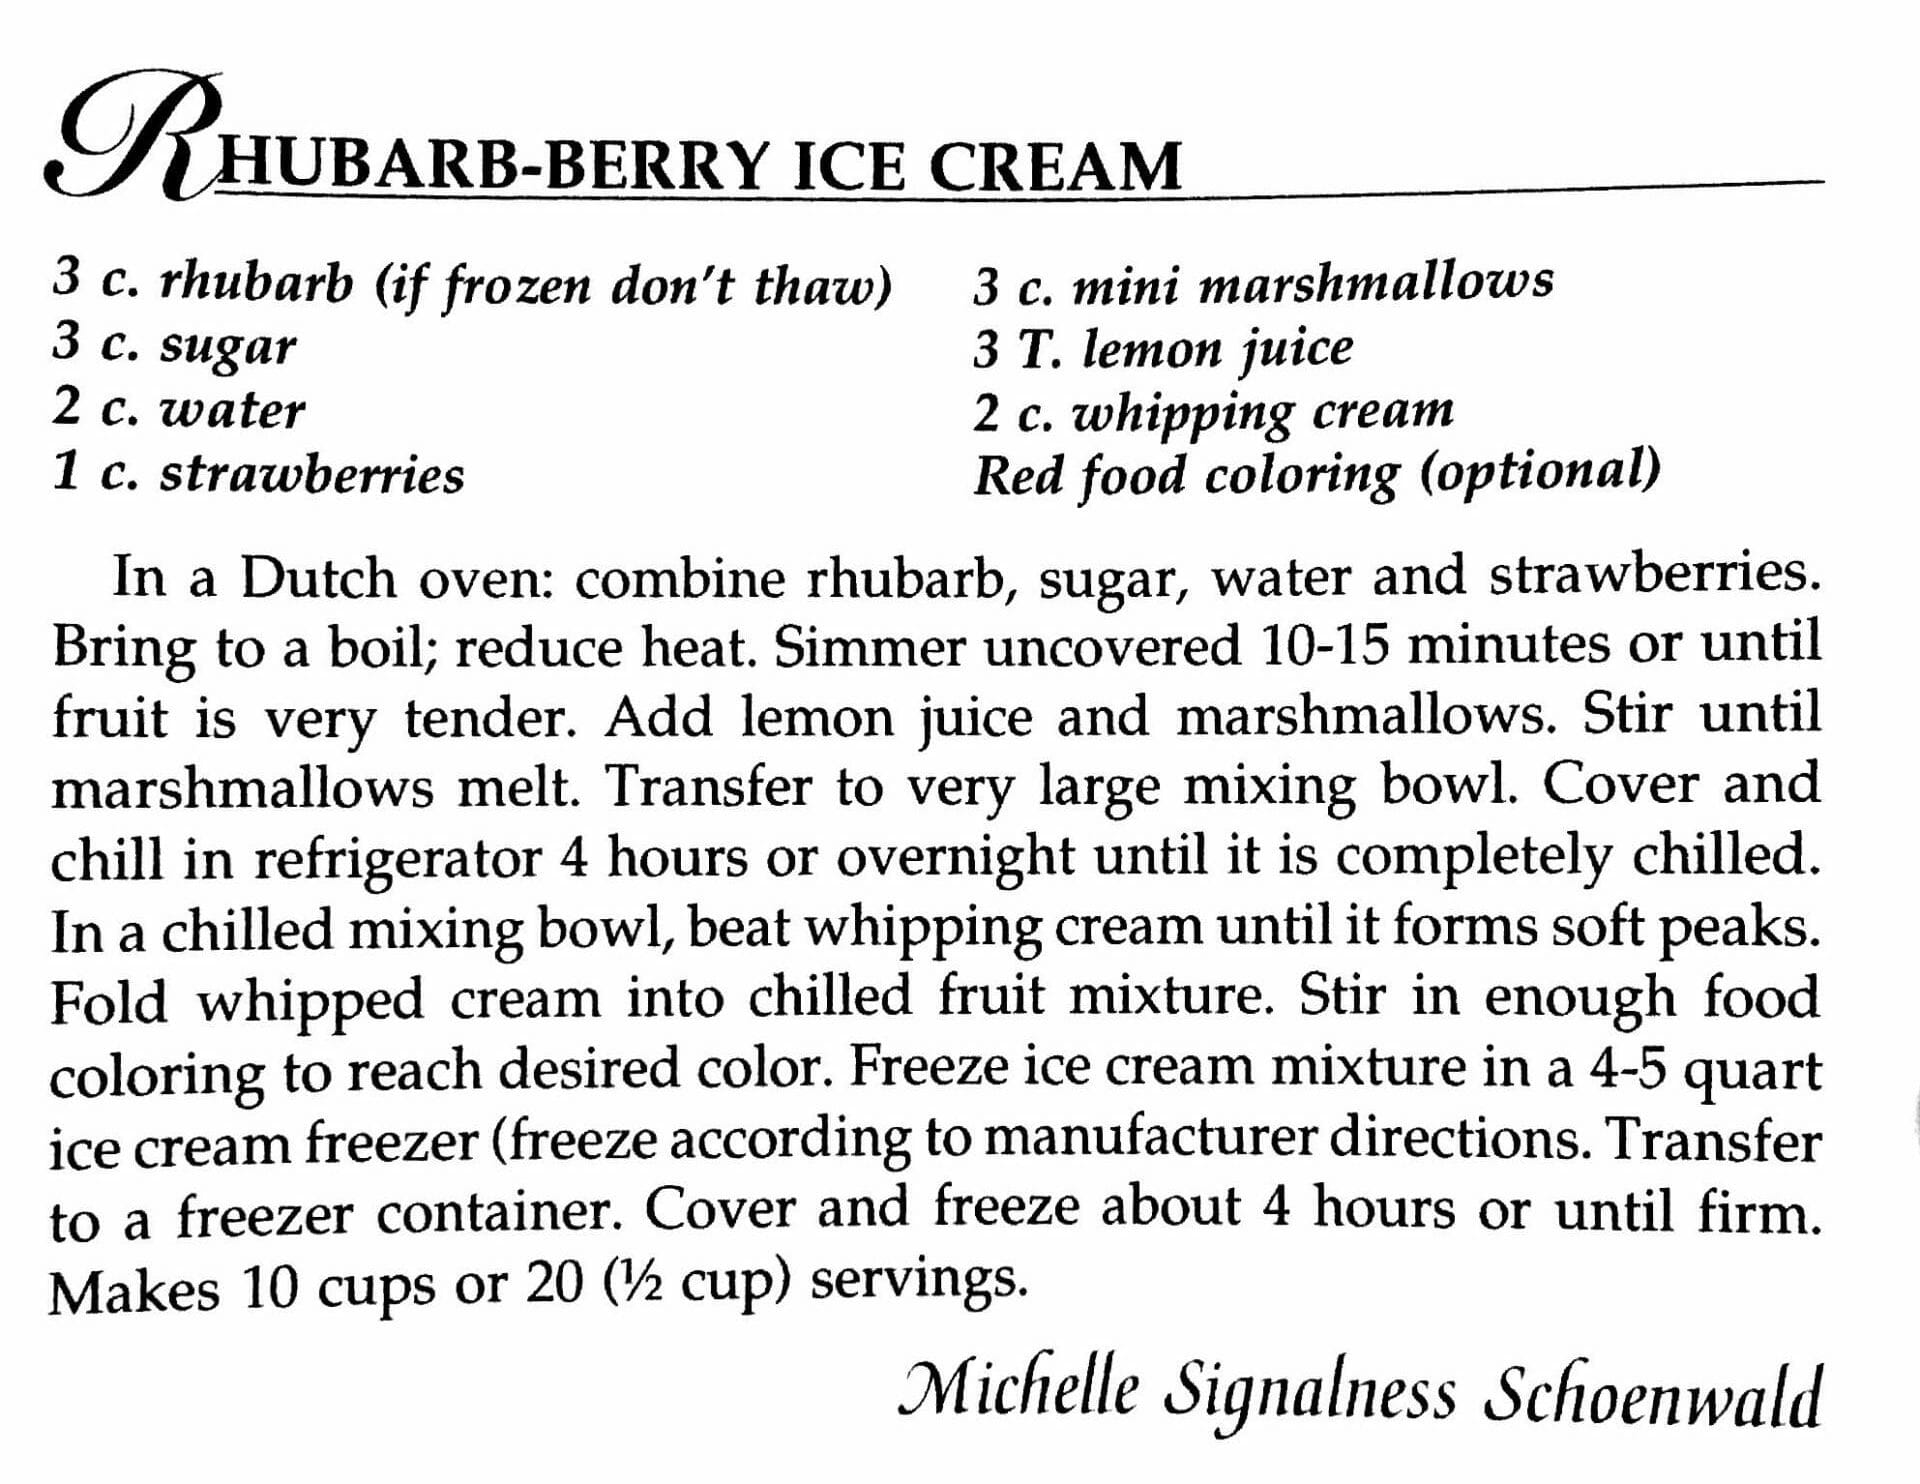 Rhubarb-Berry Ice Cream, A Taste of History Cookbook, Watford City, ND